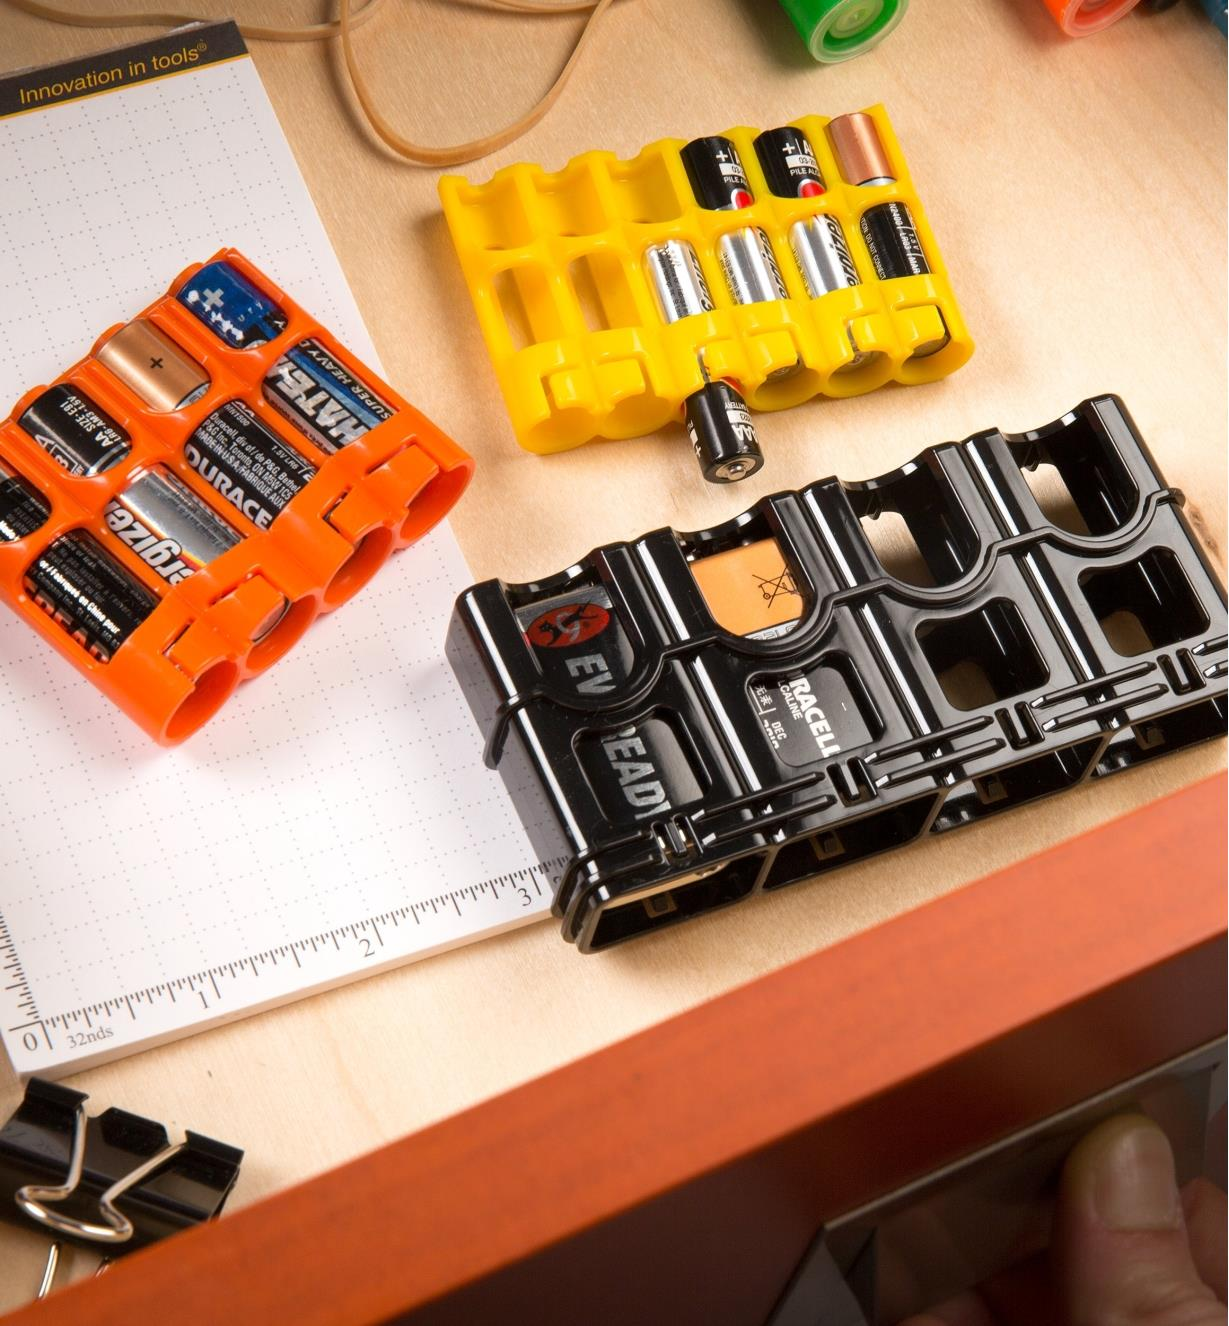 One of each size of Storacell battery caddy with batteries stored in them